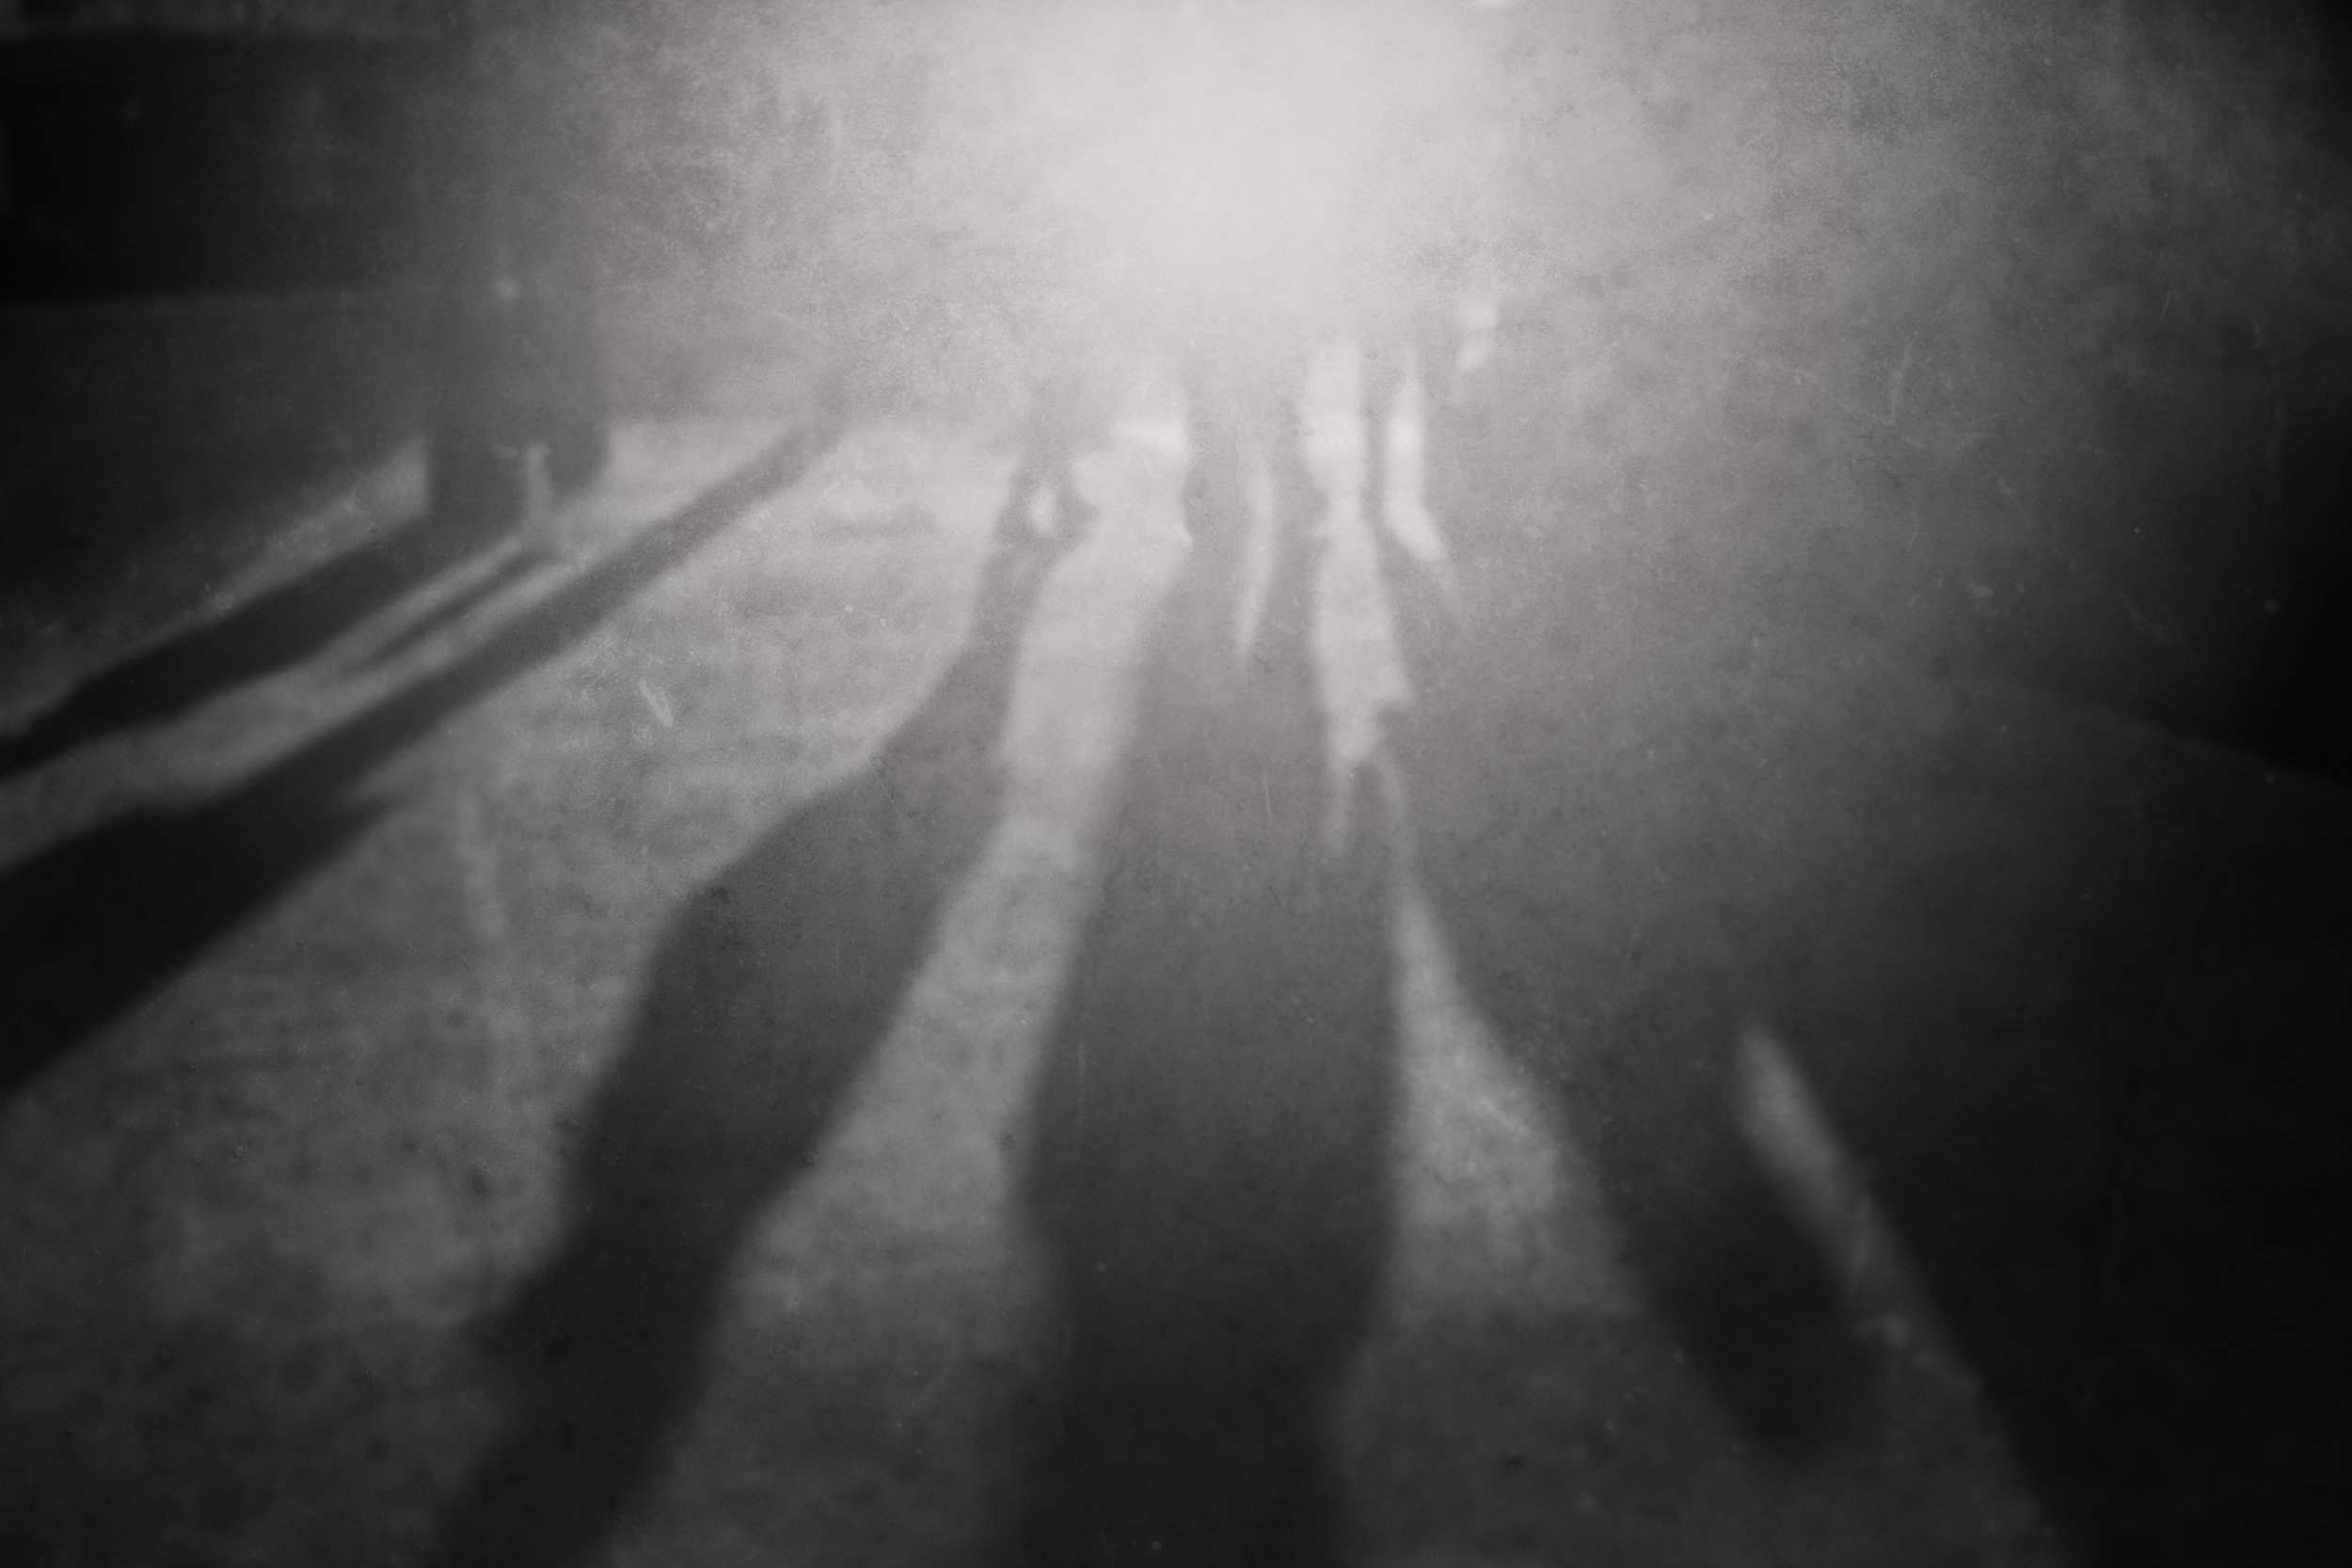 Shadow People 1, 2018